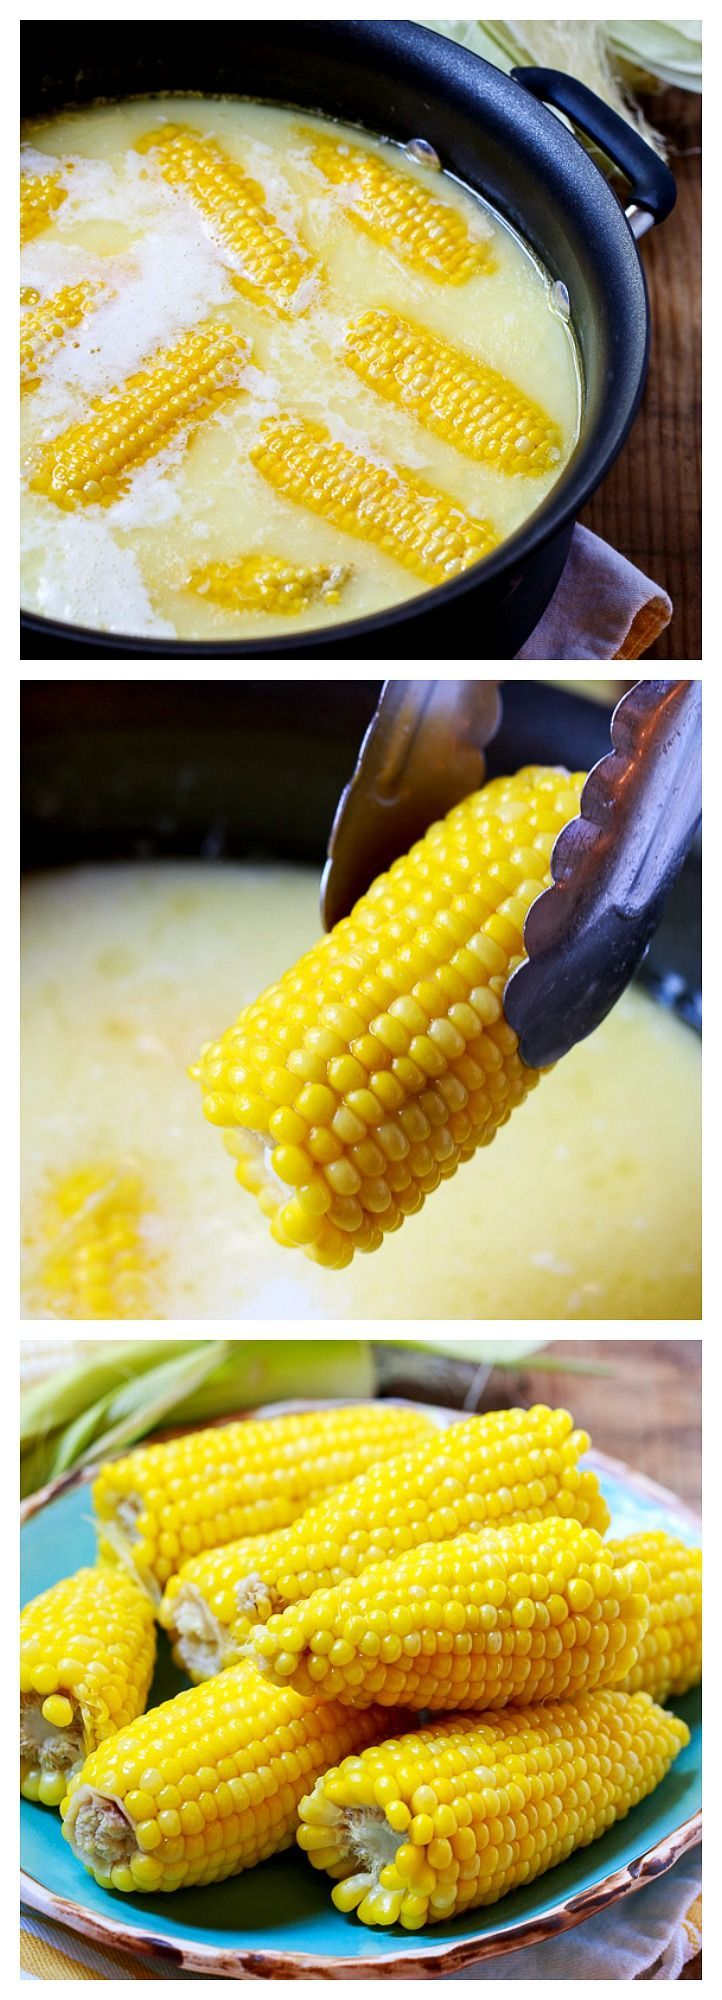 The best way to cook corn- in boiling water with a cup of milk and a stick of butter. So good!